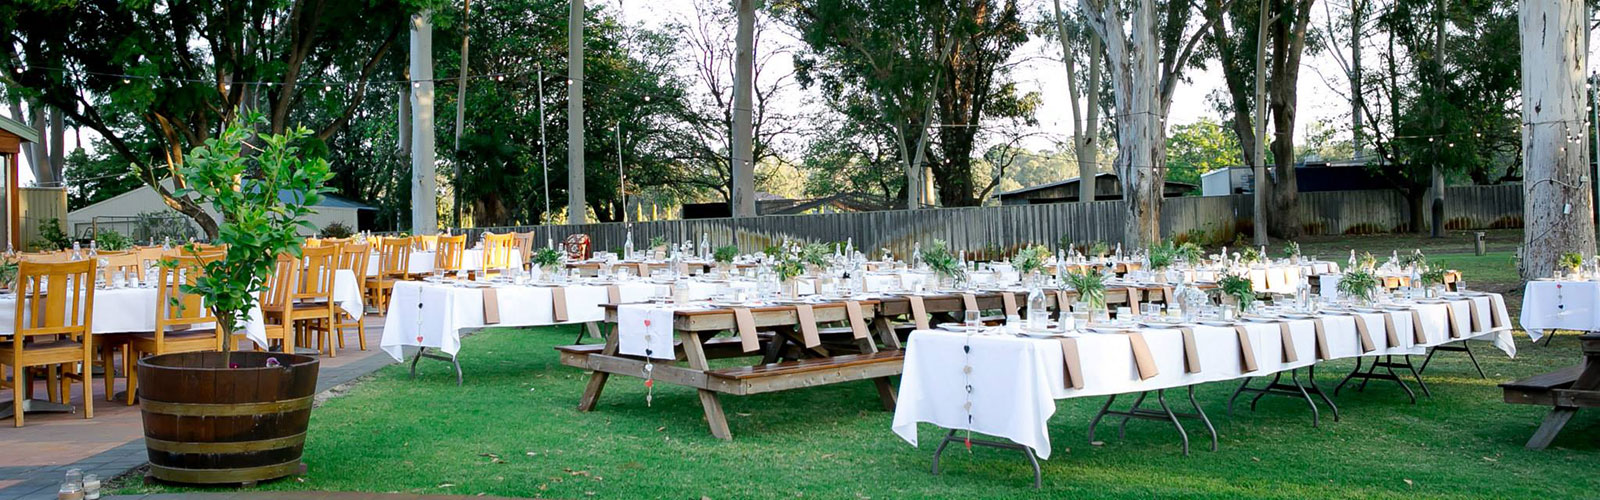 elmar's event function wedding venue swan valley